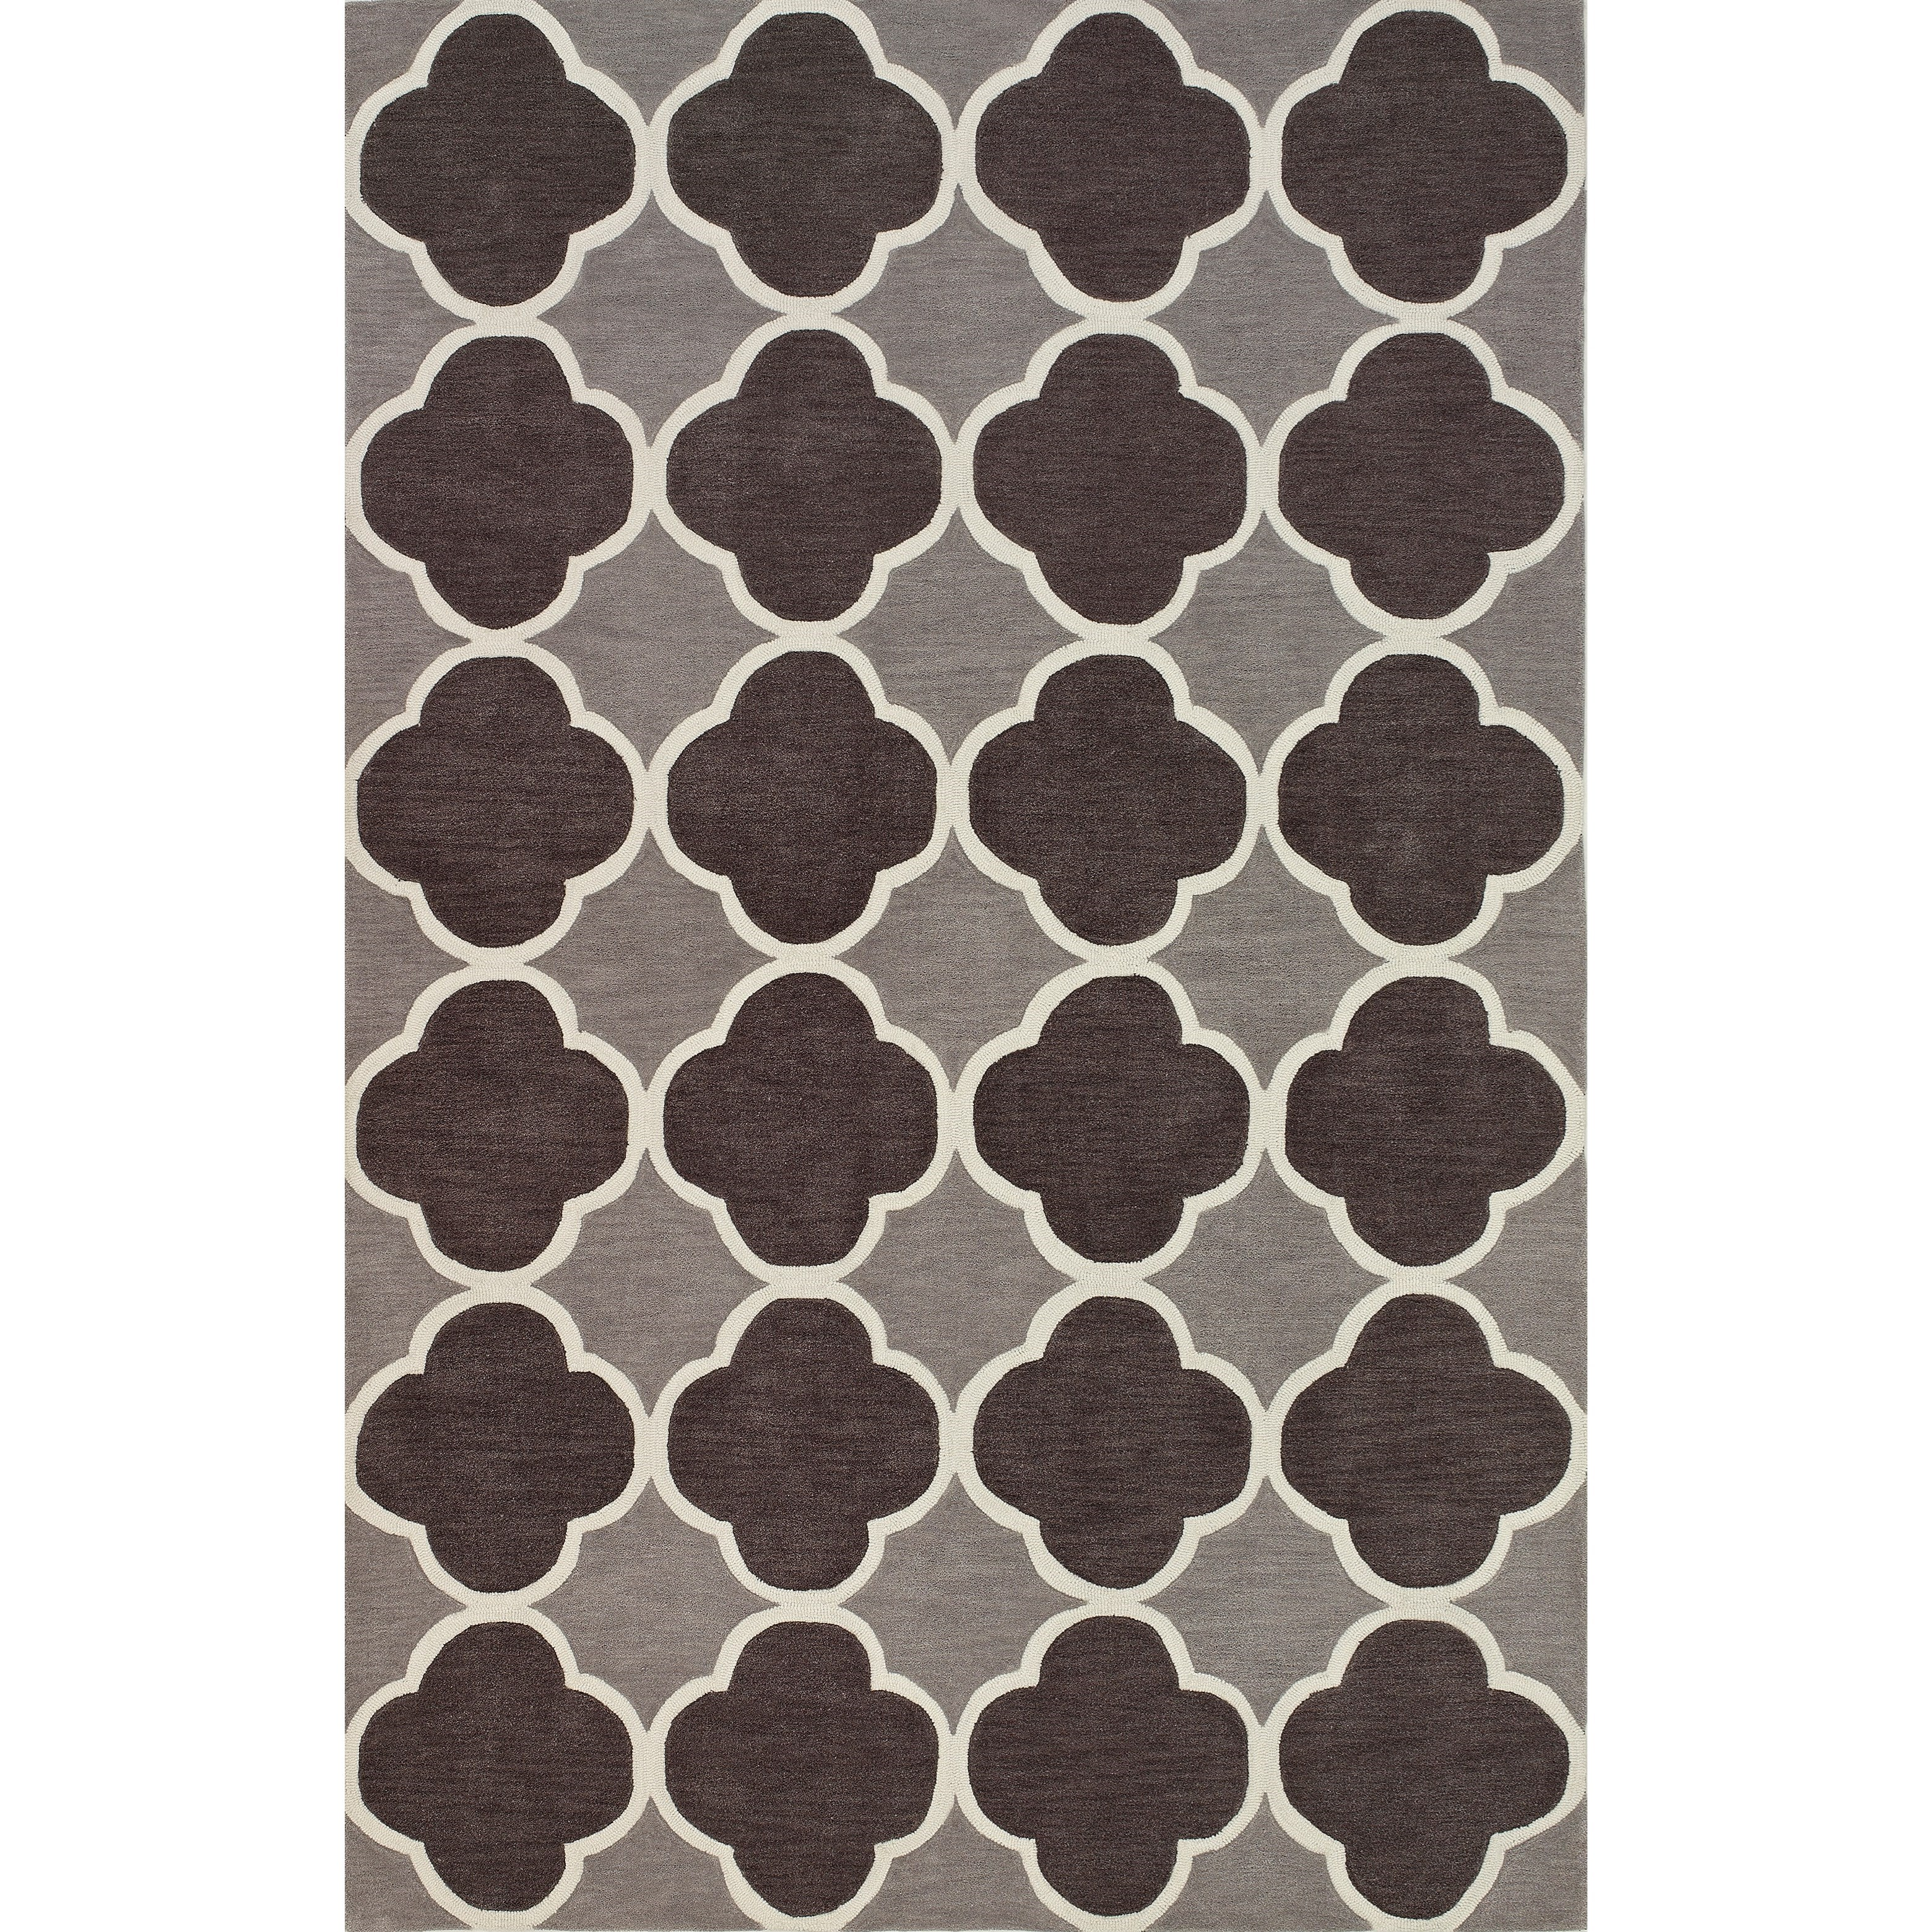 Dalyn Infinity Charcoal 8'X10' Rug - Item Number: IF2CC8X10